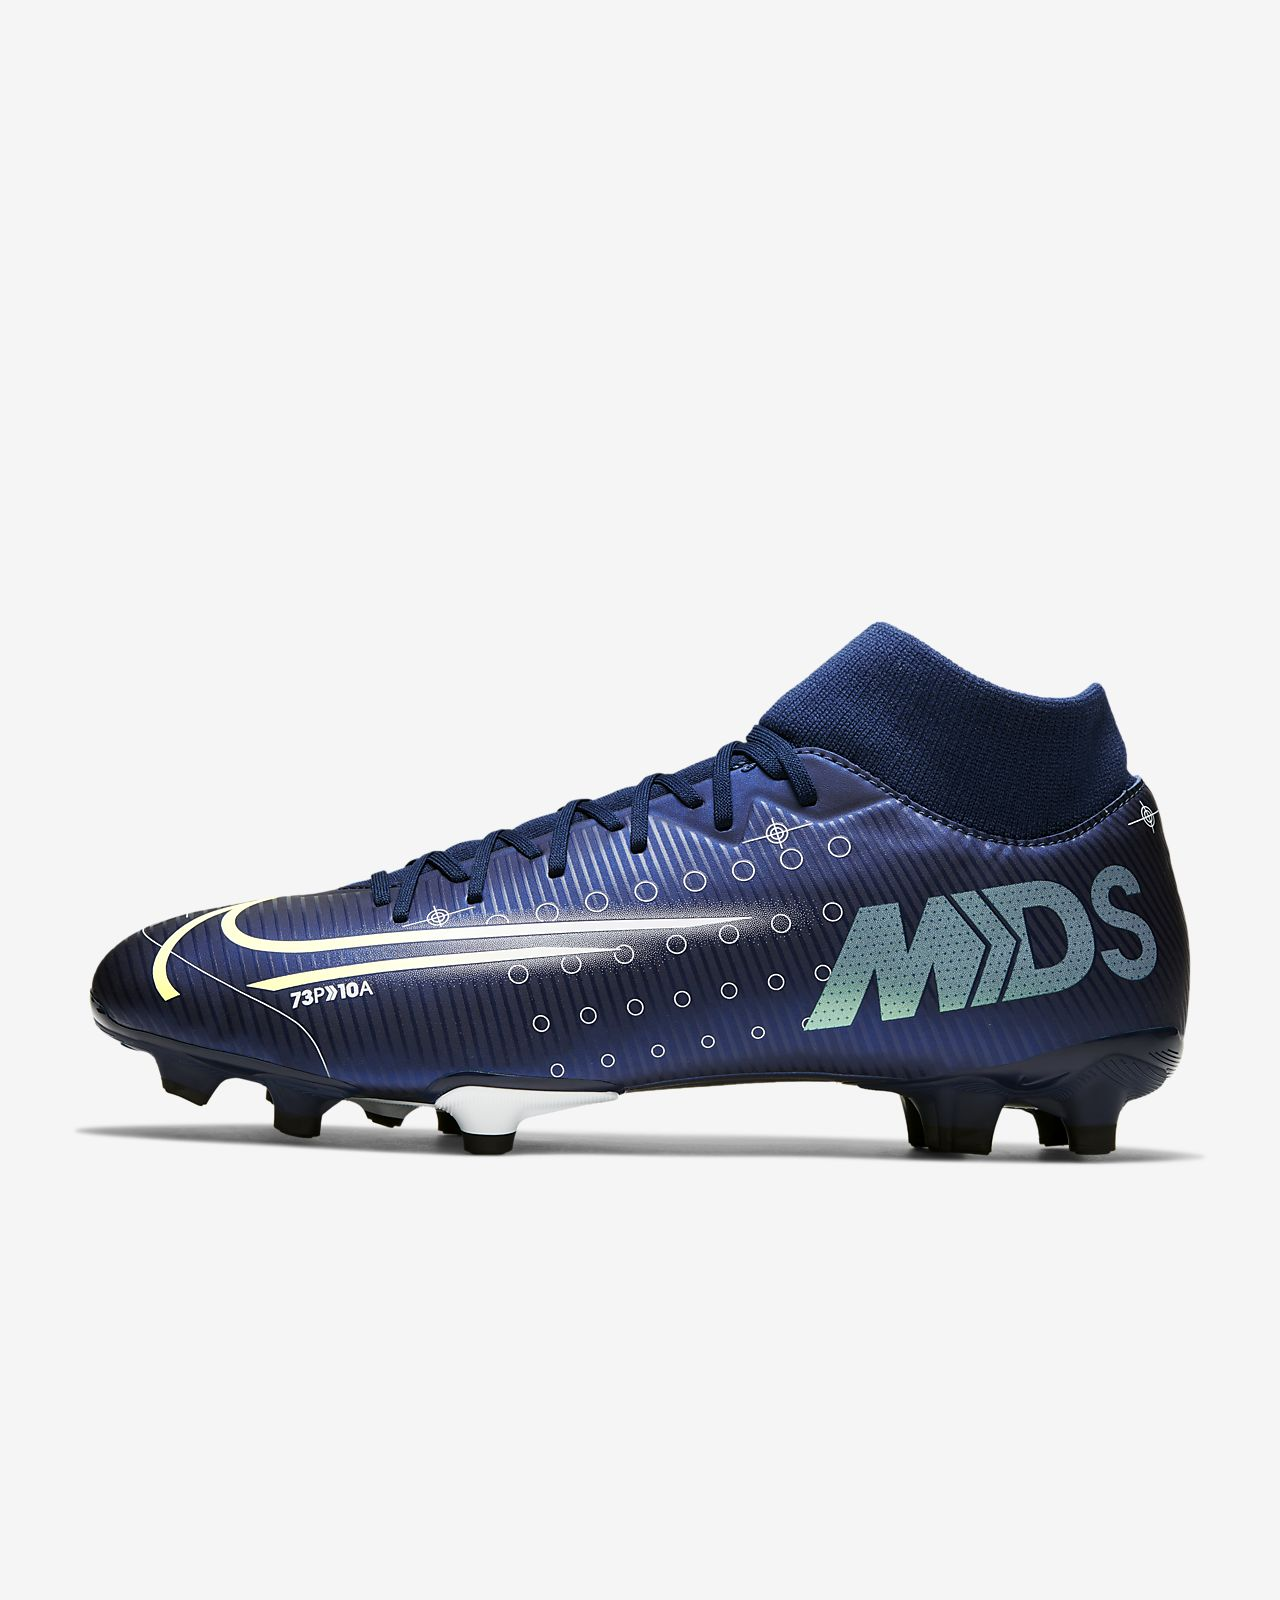 Calzado de fútbol para múltiples superficies Nike Mercurial Superfly 7 Academy MDS MG